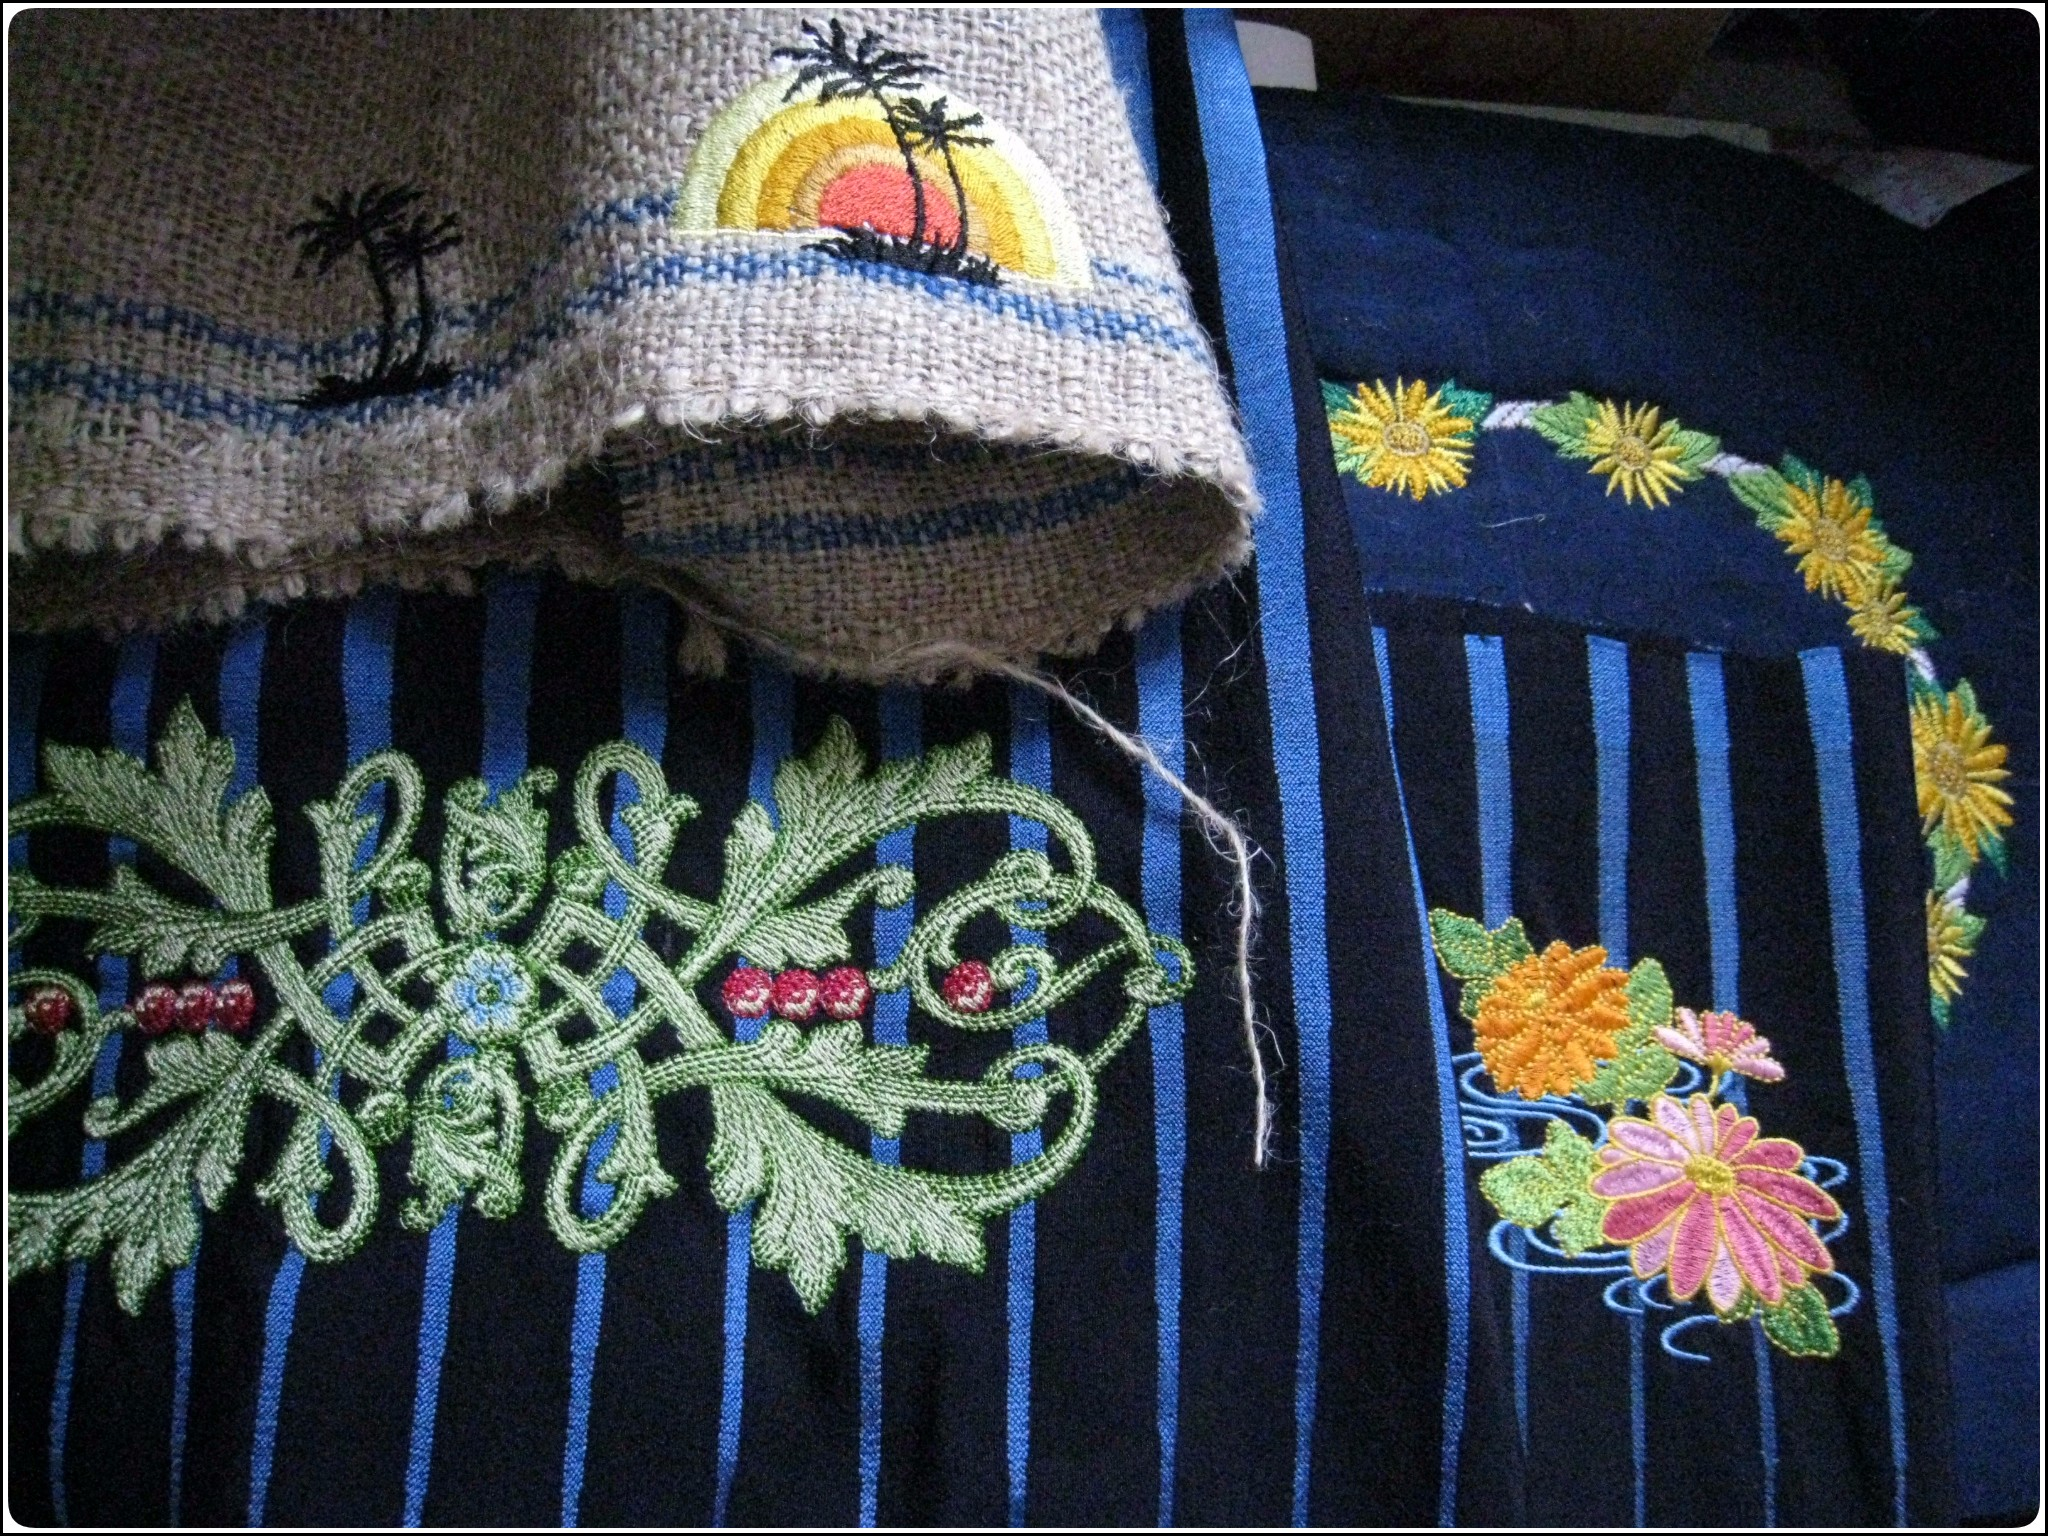 embroidery_11_621.jpg